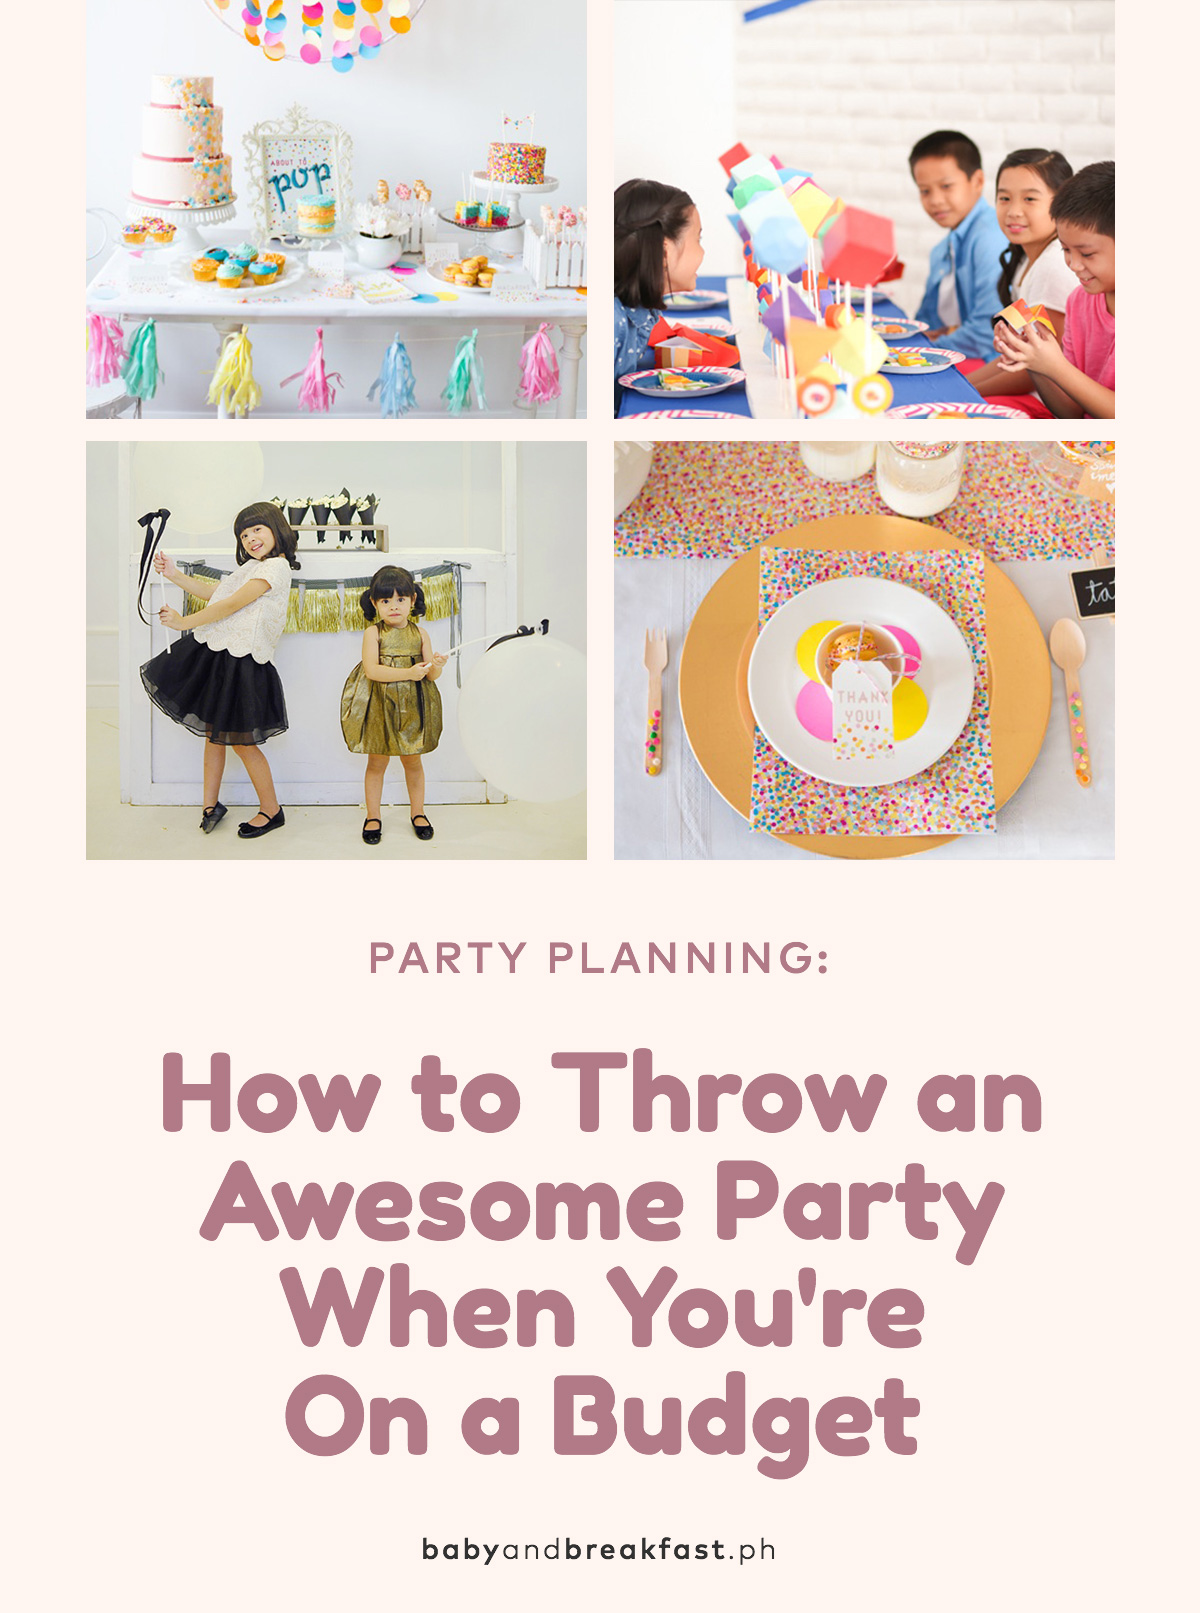 Baby and Breakfast: Party Planning How to Throw an Awesome Party When You're on a Budget